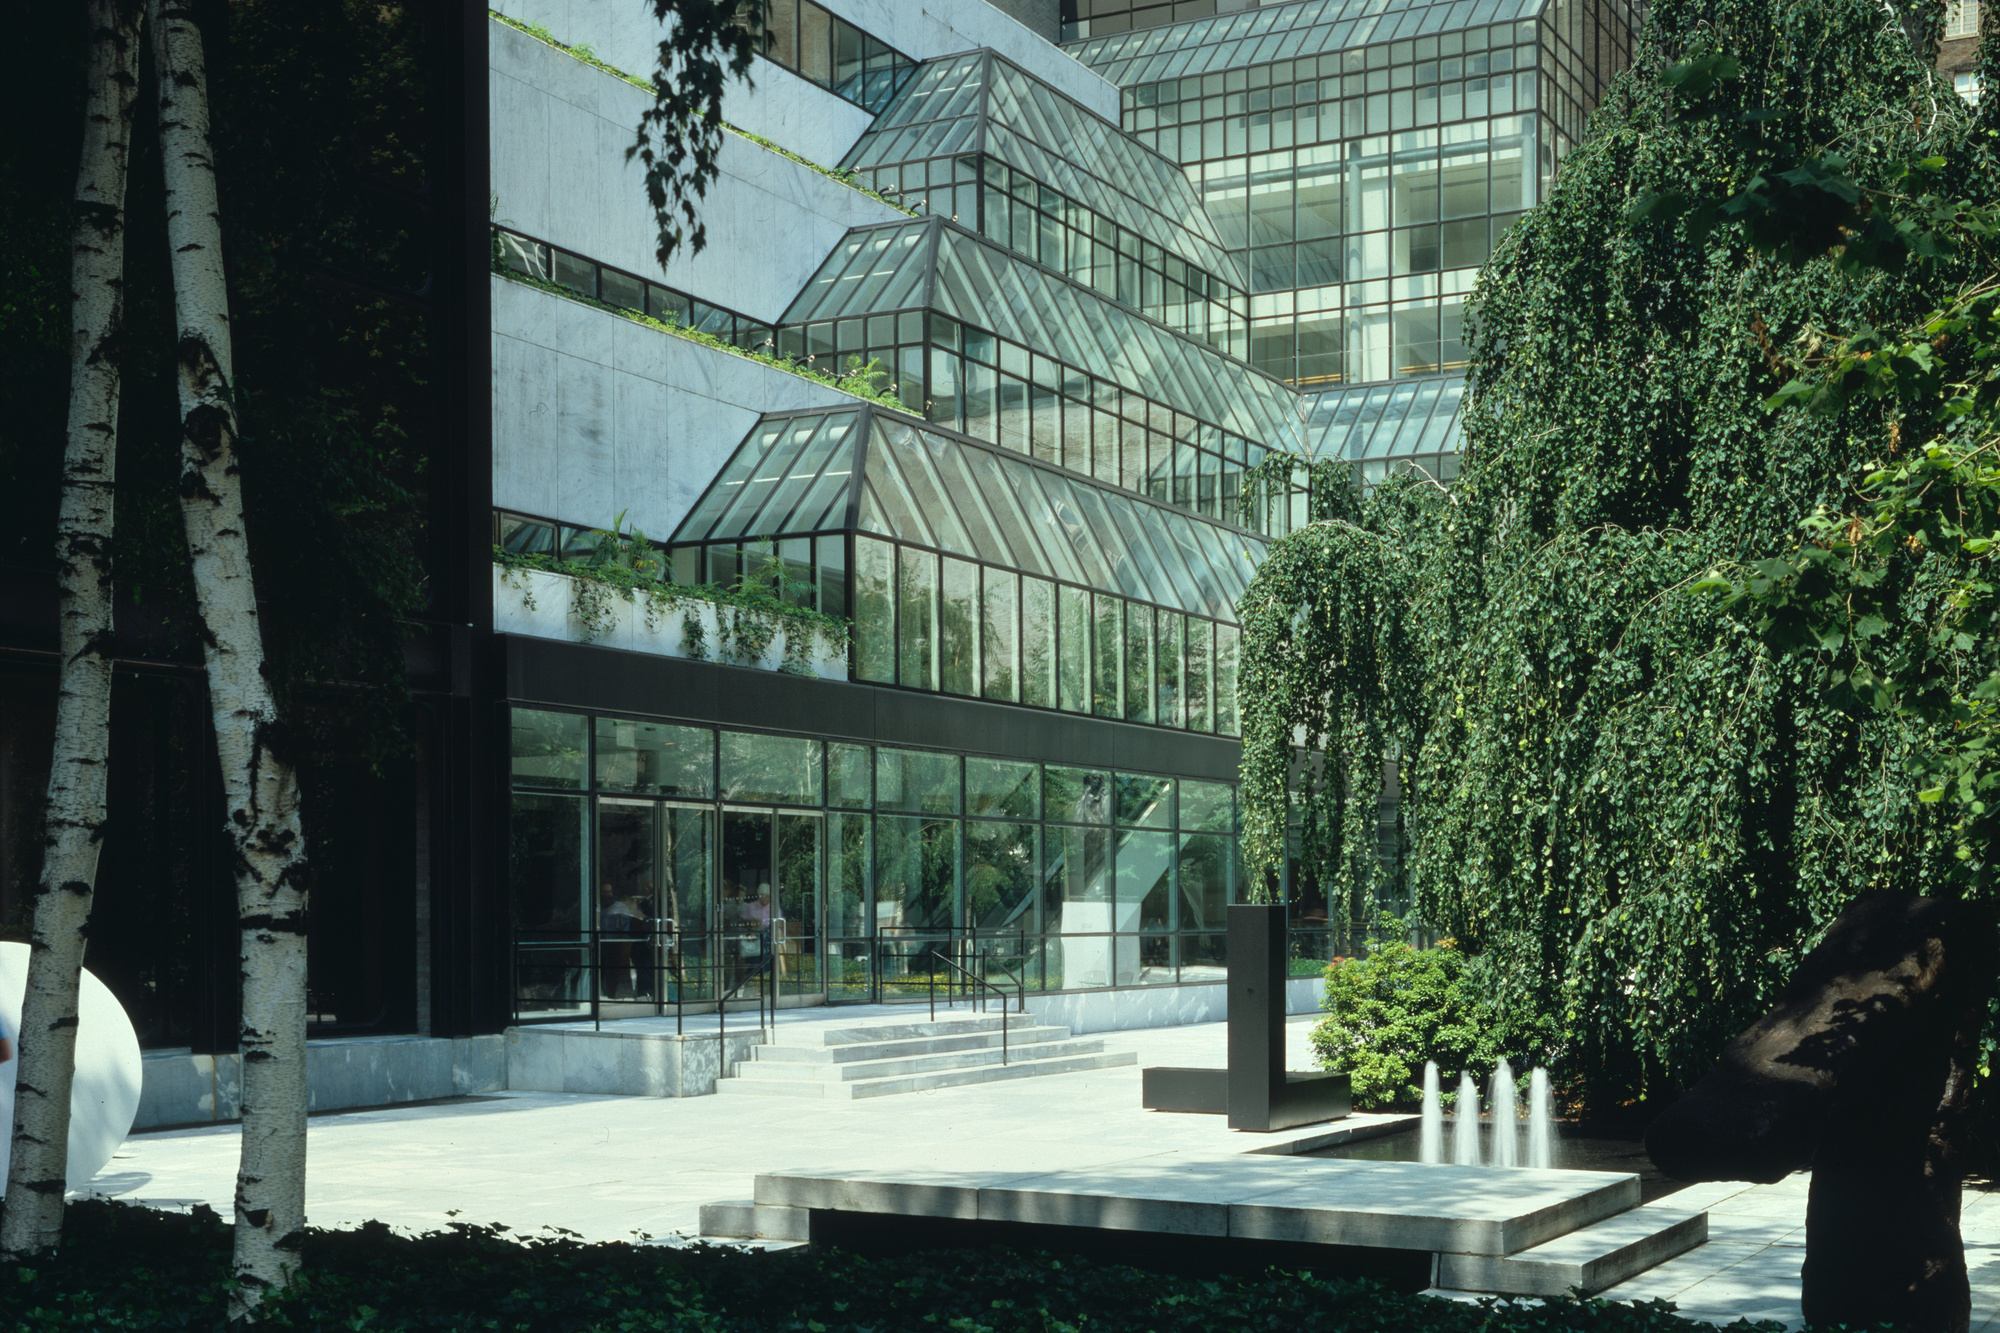 "Foreground: The Abby Aldrich Rockefeller Sculpture Garden, designed in 1953 by Philip Johnson; Background: Garden Hall, designed in 1984, and Museum Tower, designed in 1982, by César Pelli & Associates. Color transparency, 4 × 5"" (10.1 × 12.7 cm). Photographic Archive. The Museum of Modern Art Archives, New York. © The Museum of Modern Art, New York. Photo: Scott Frances"